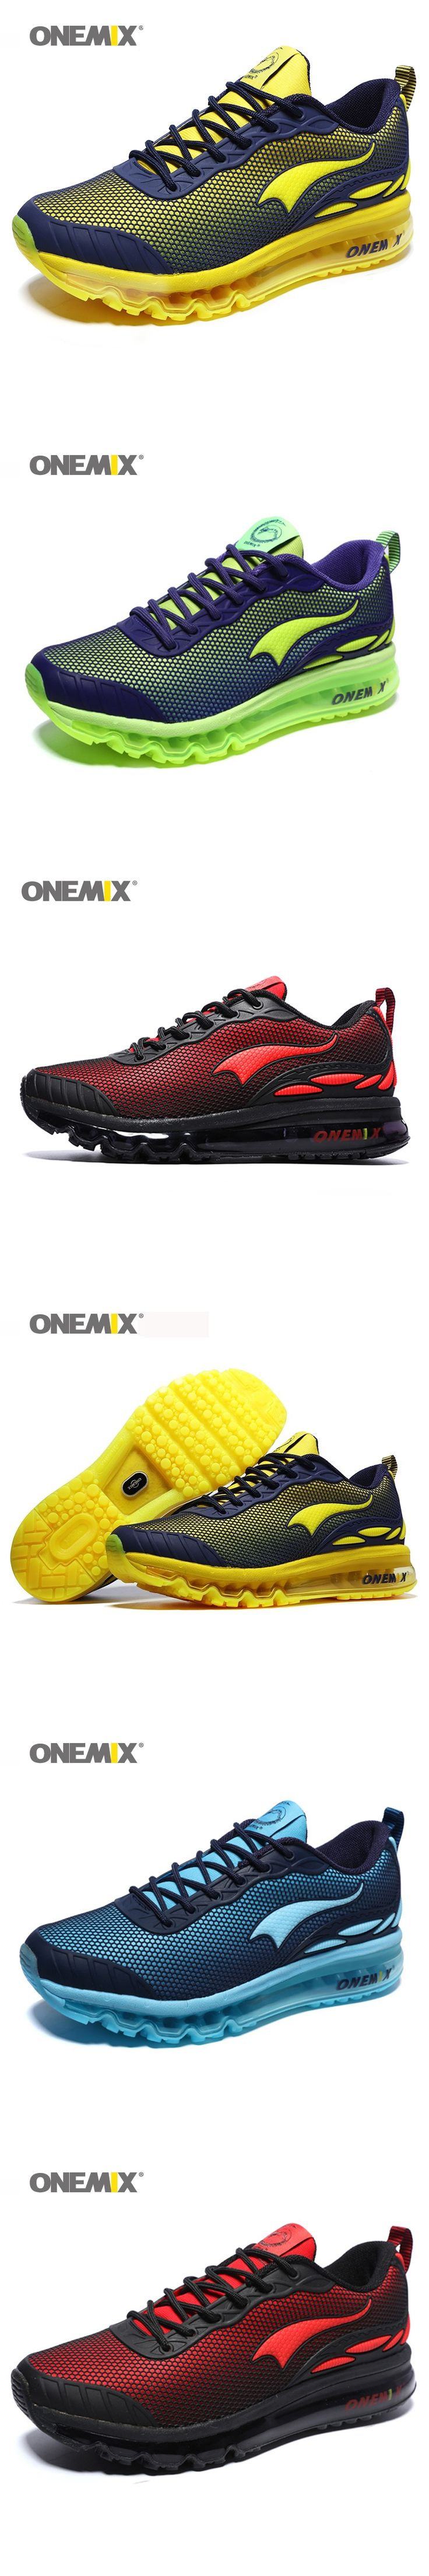 ONEMIX Man Running Shoes Max Size 12 Nice Trends Run Mesh Breathable Men Jogging Shoe Sport for Outdoor Walking Sneakers Cushion